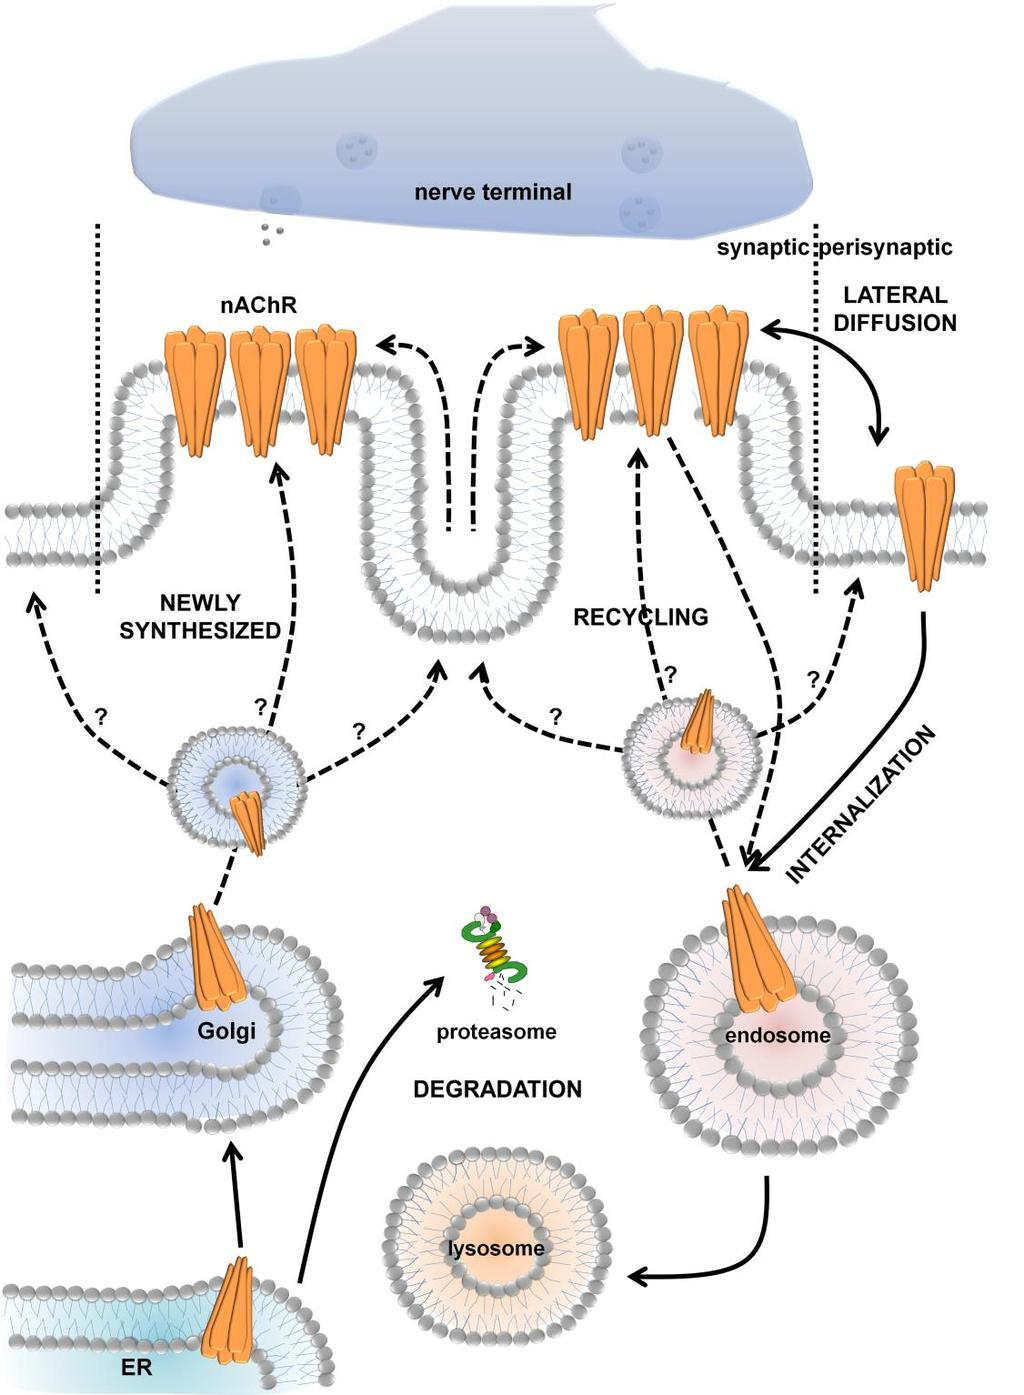 Figure 1.1. Dynamics of nicotinic acetylcholine receptors at the neuromuscular junction.